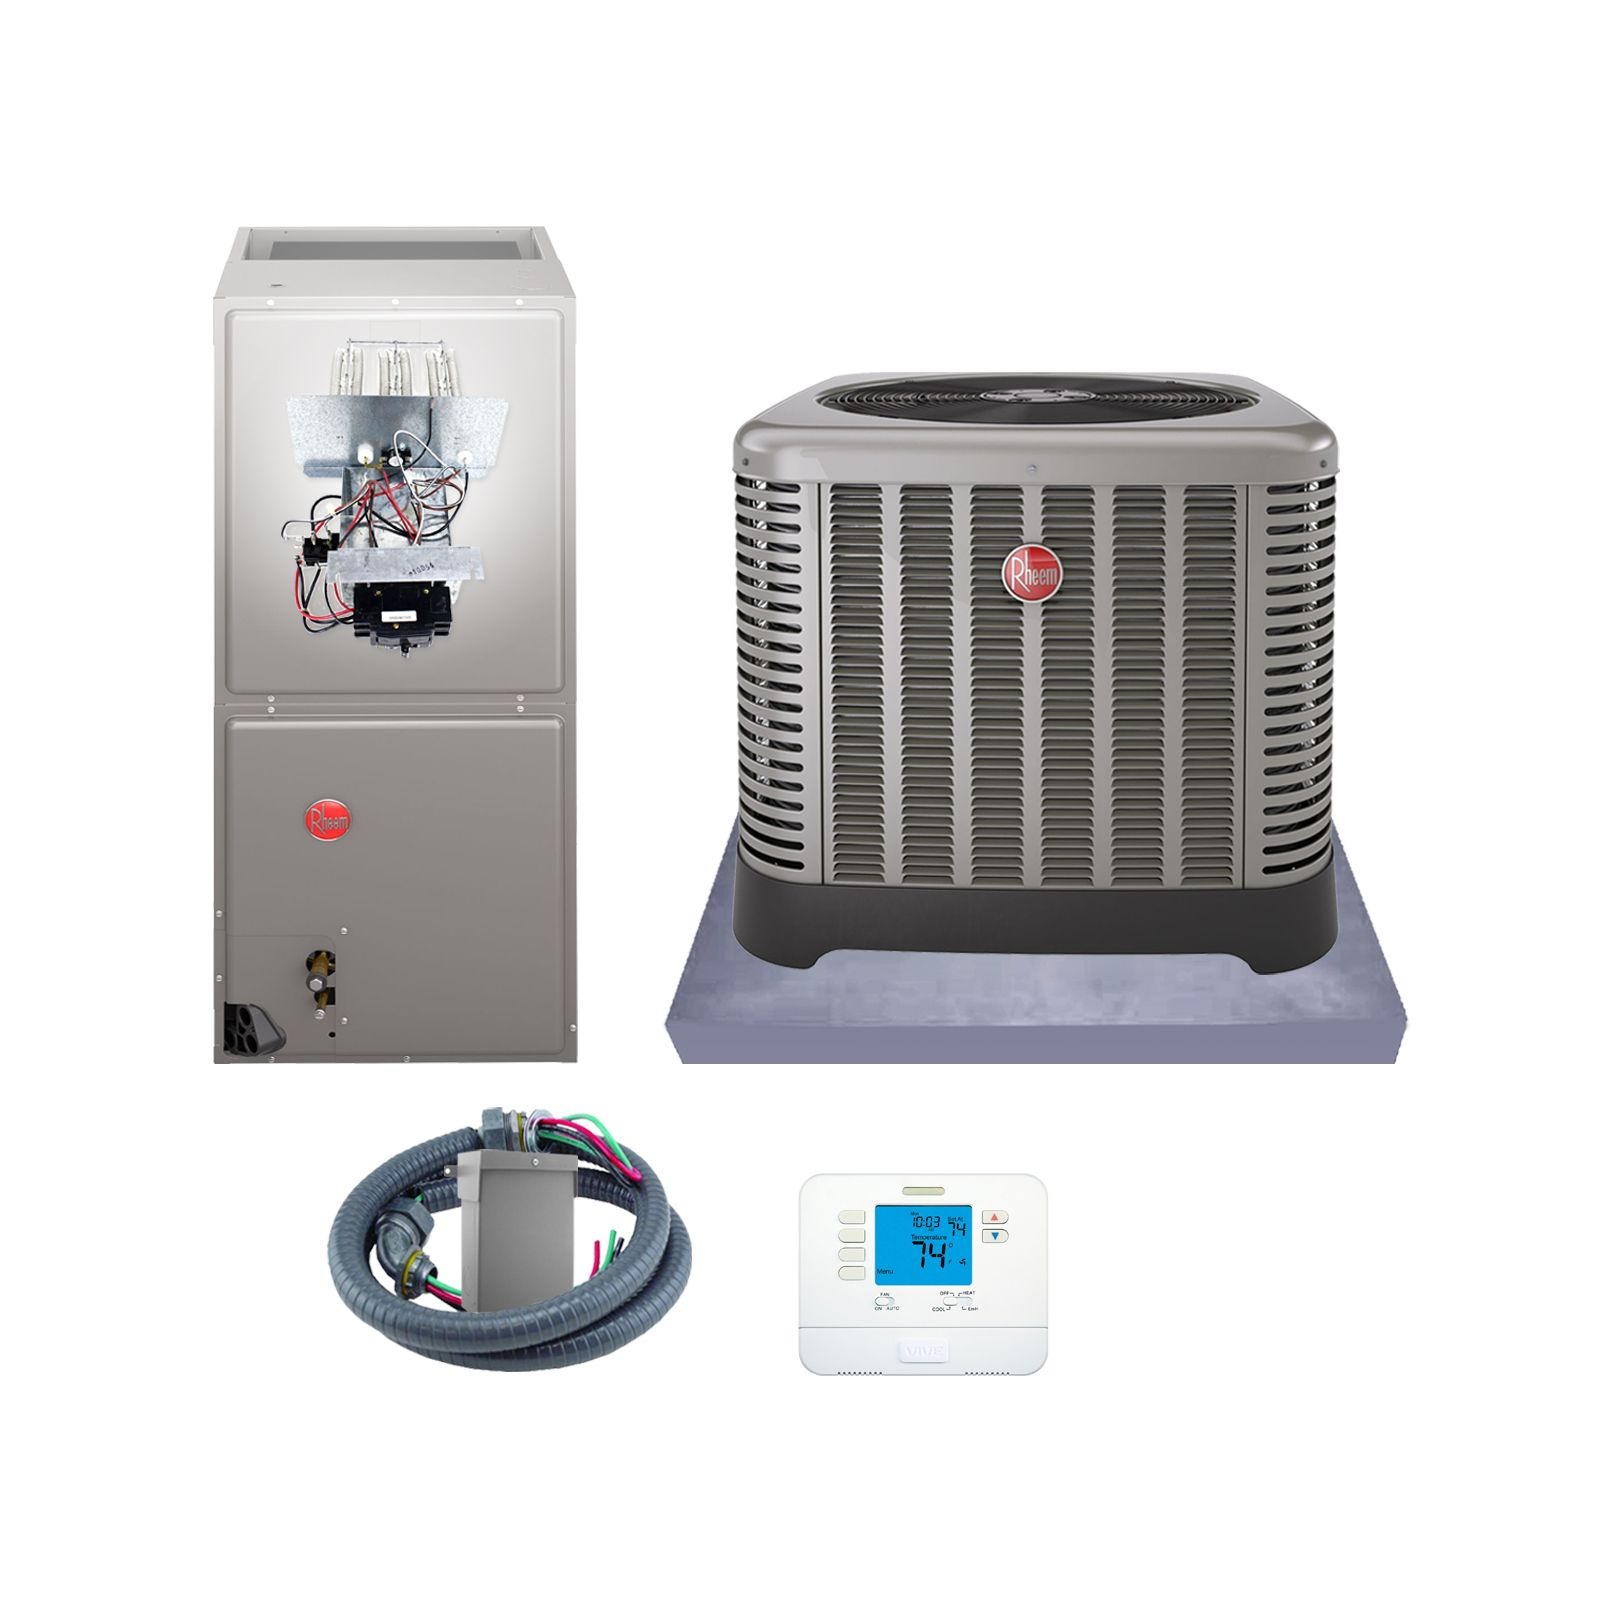 Rheem (AHRI 7512187) 4 Ton, 15 SEER/12.5 EER Classic Series, Heat Pump Split System and Install Kit